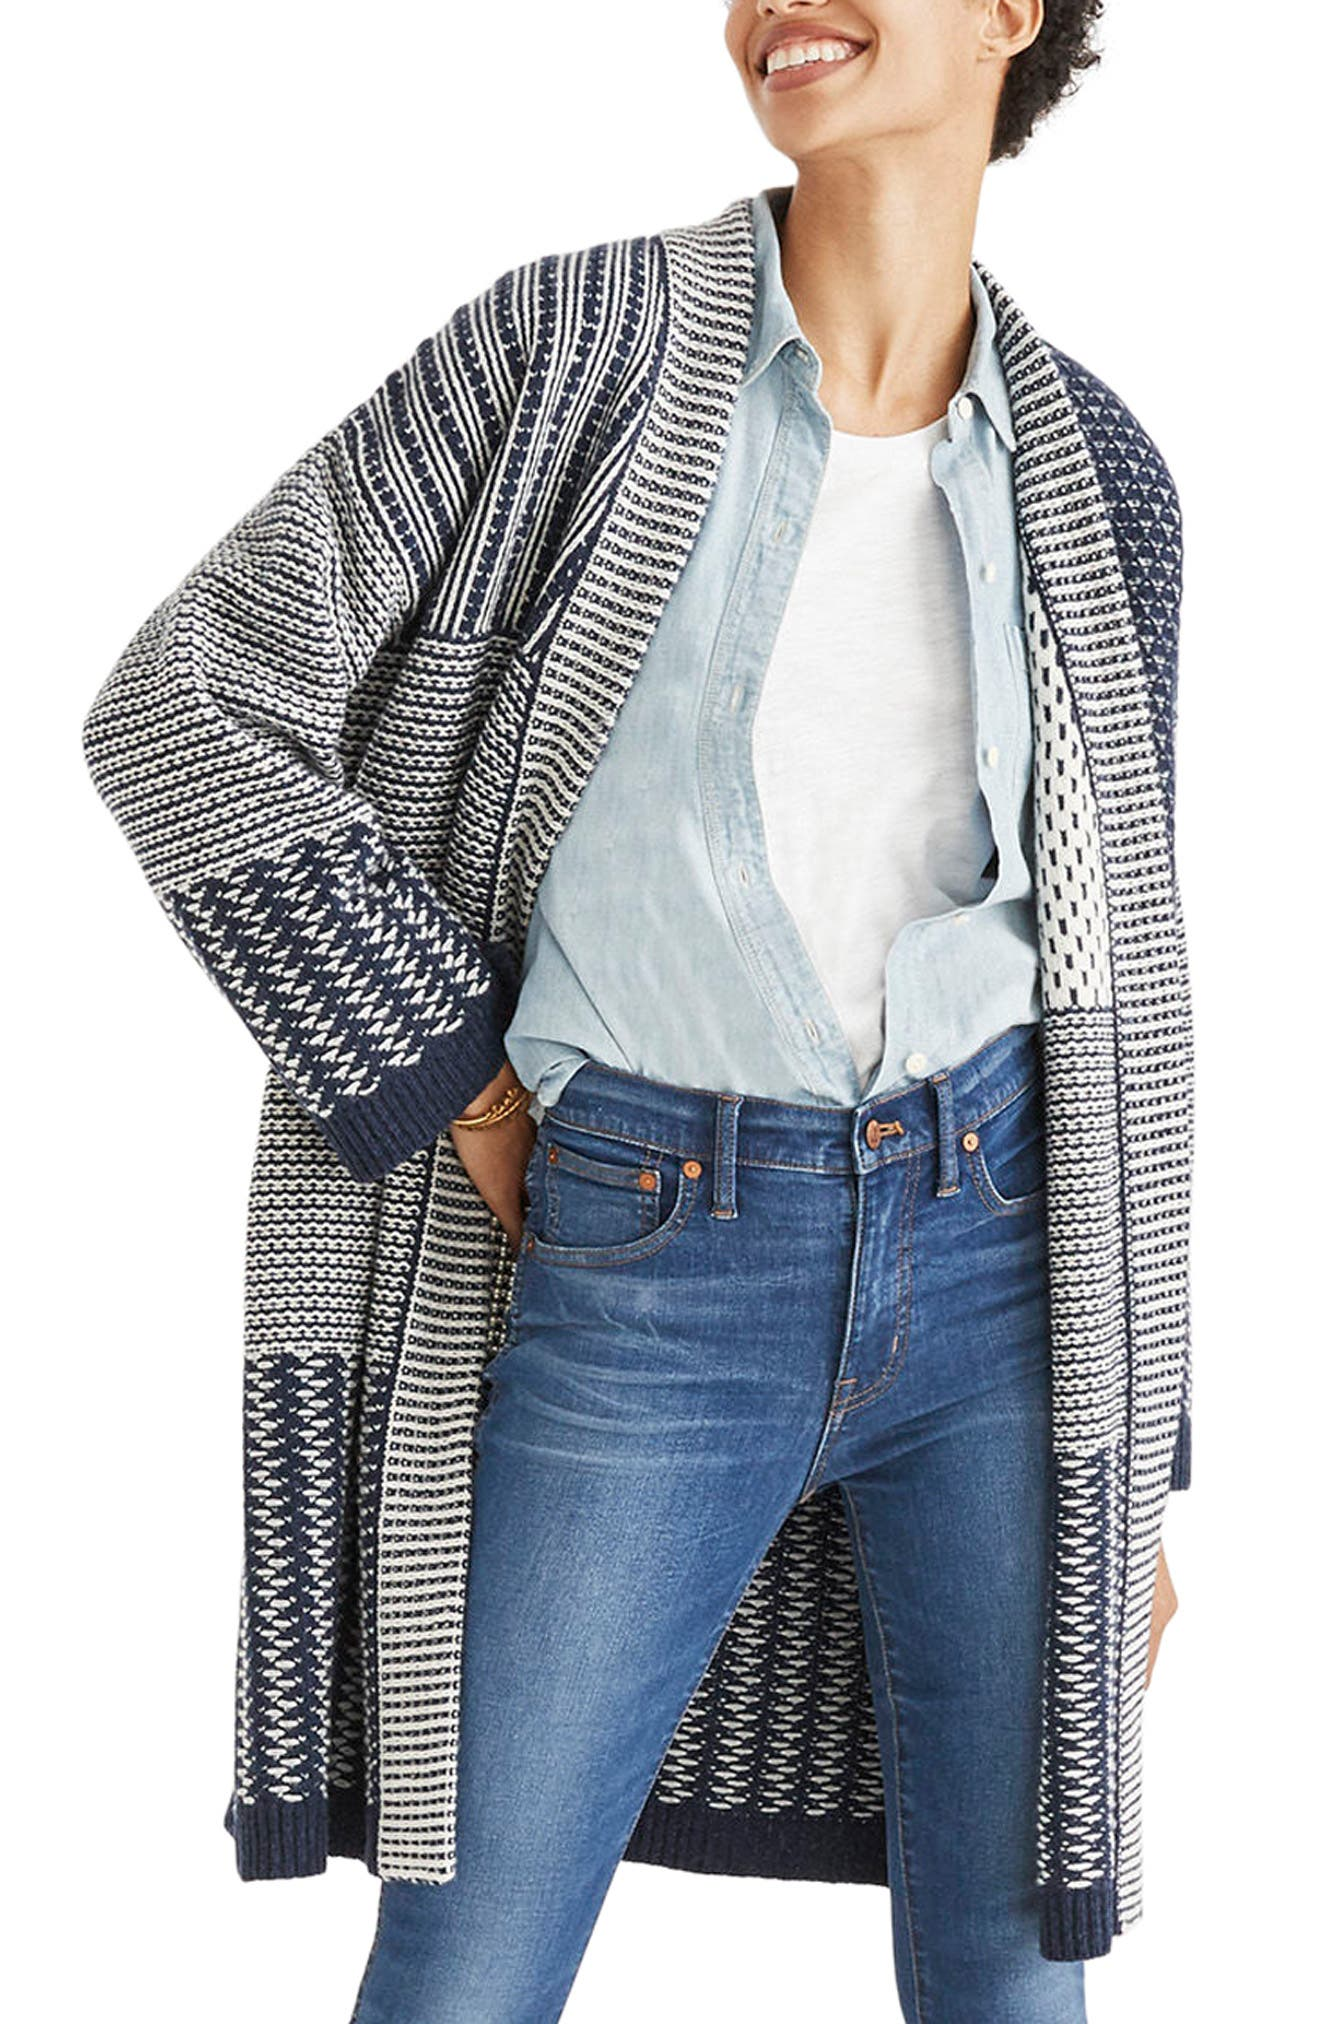 Alternate Image 1 Selected - Madewell Patchwork Collage Cardigan